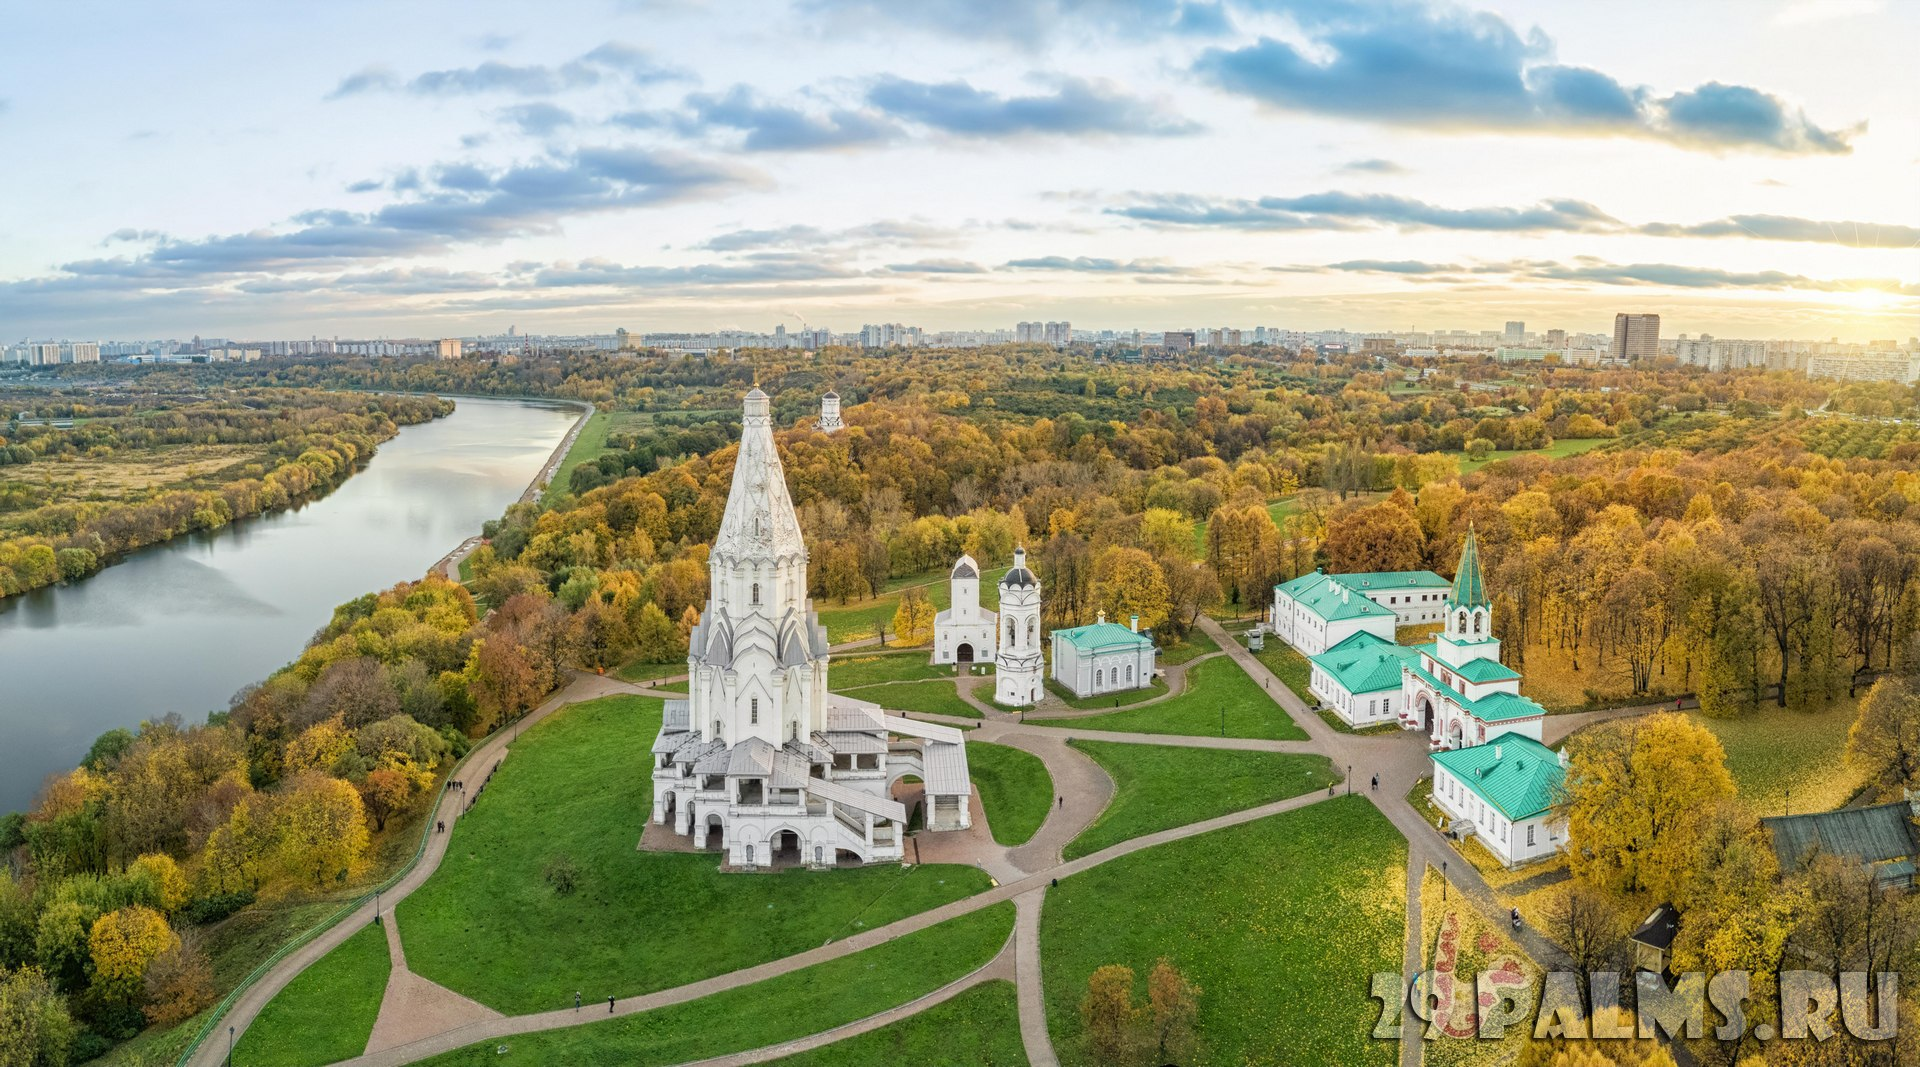 Россия. Москва. Музей-заповедник Коломенское. Church of the Ascension in Kolomenskoye park in autumn season(aerial view), Moscow. Фото bbsferrari-Depositphoto